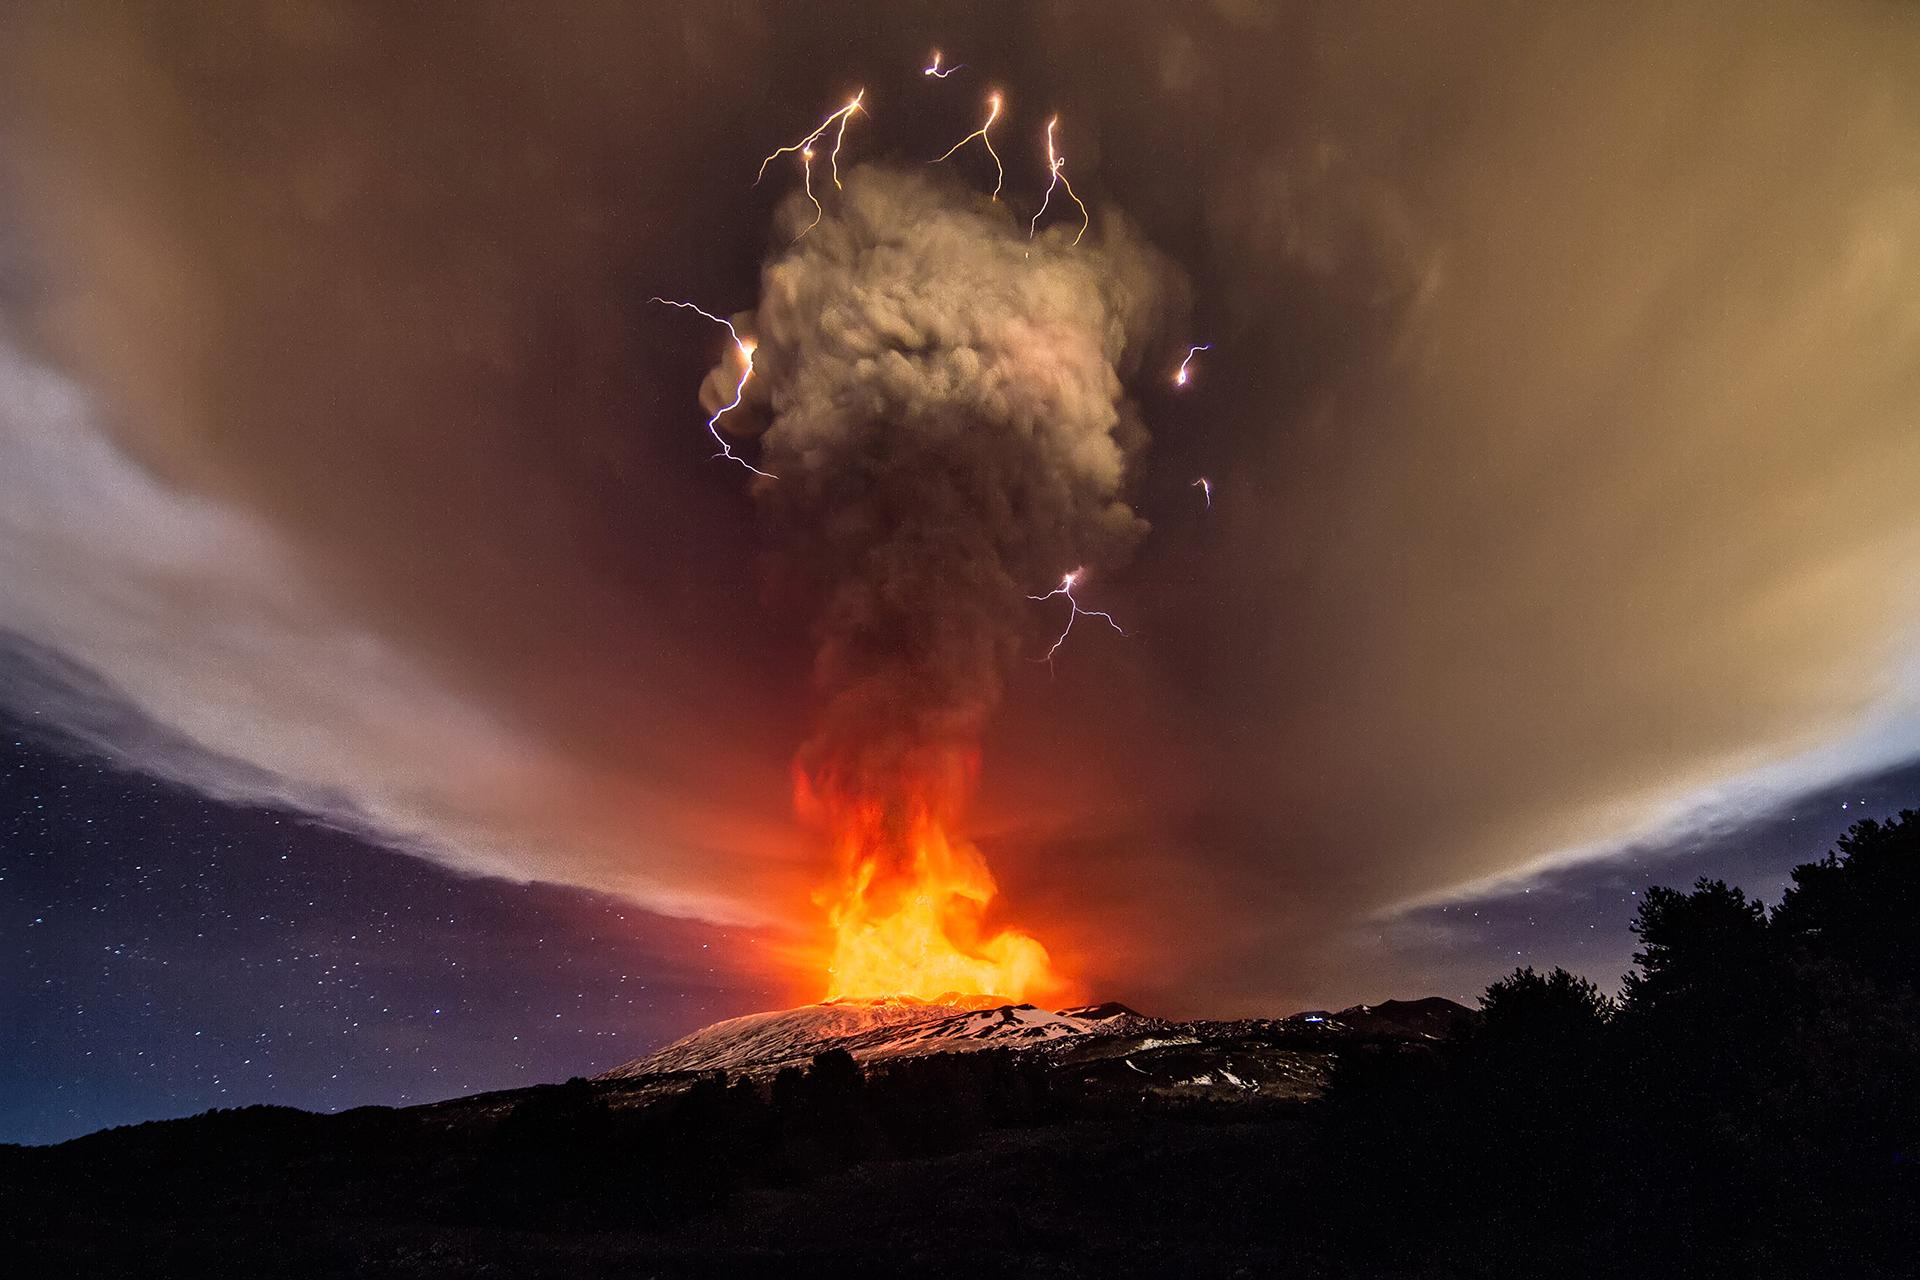 Explosions from Mount Etna's Voragine crater light up night sky